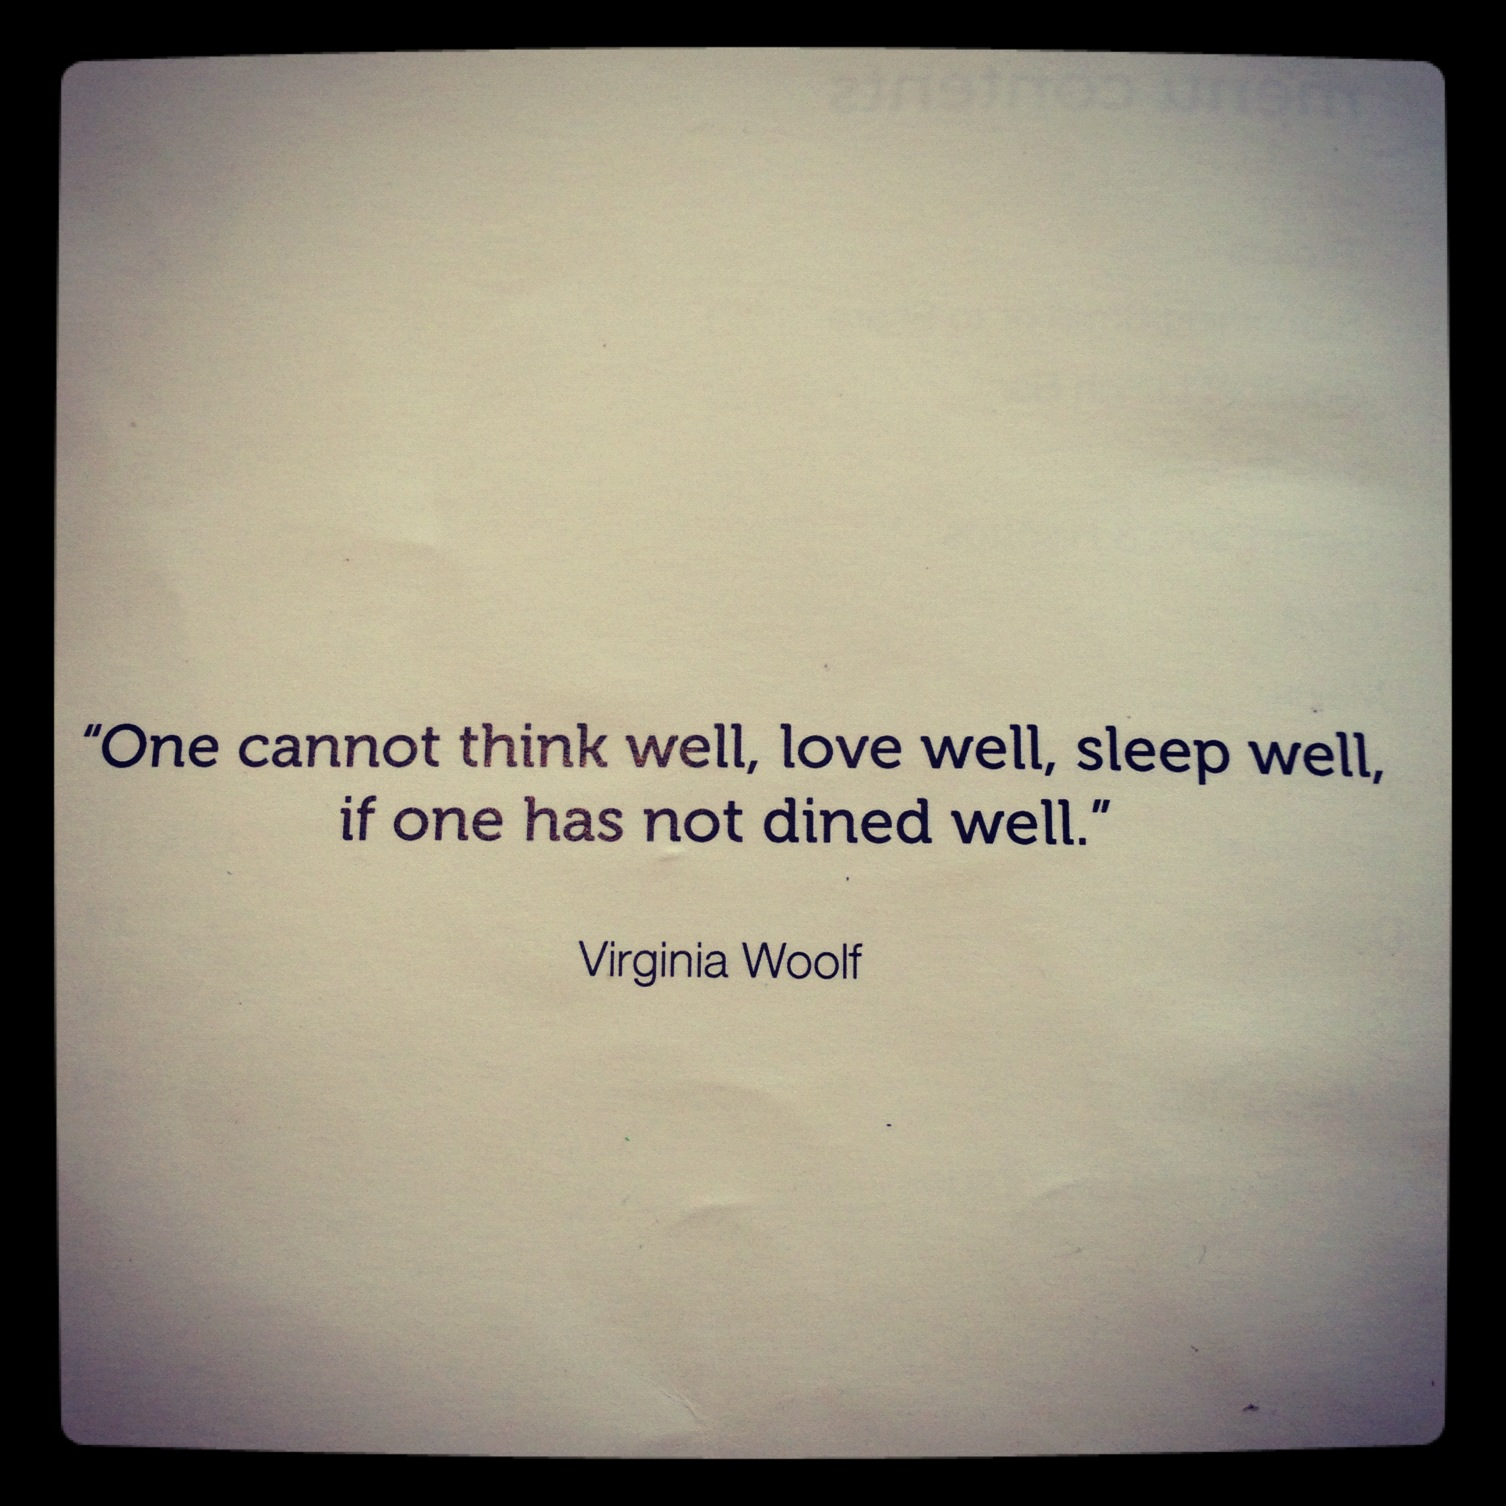 Yoga and food Virginia Wolf quote